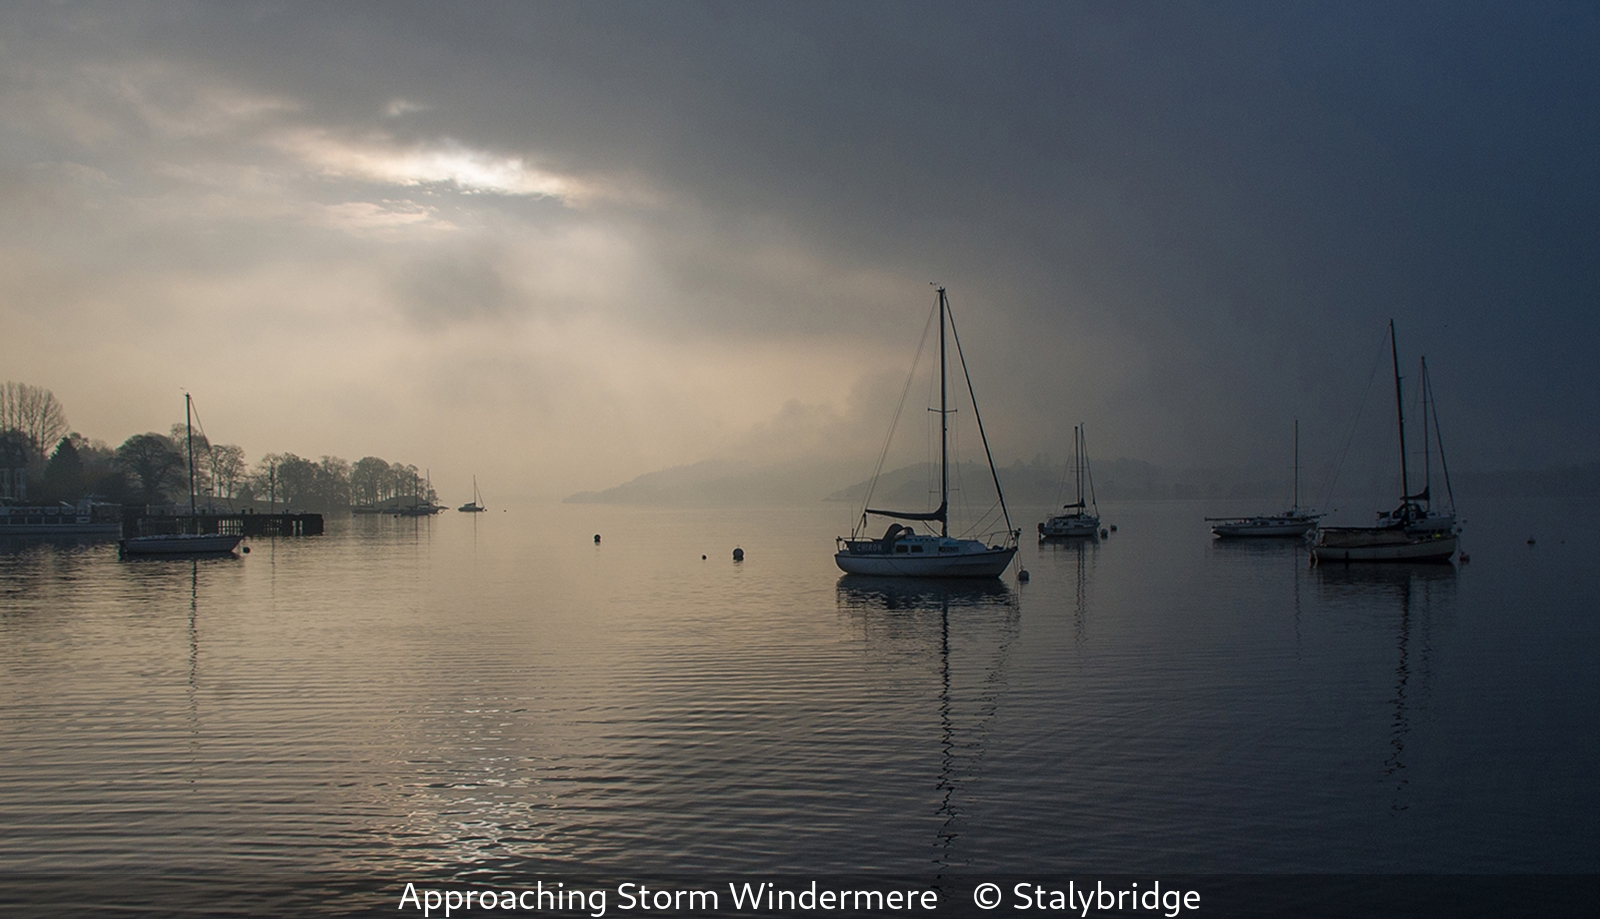 Approaching Storm Windermere